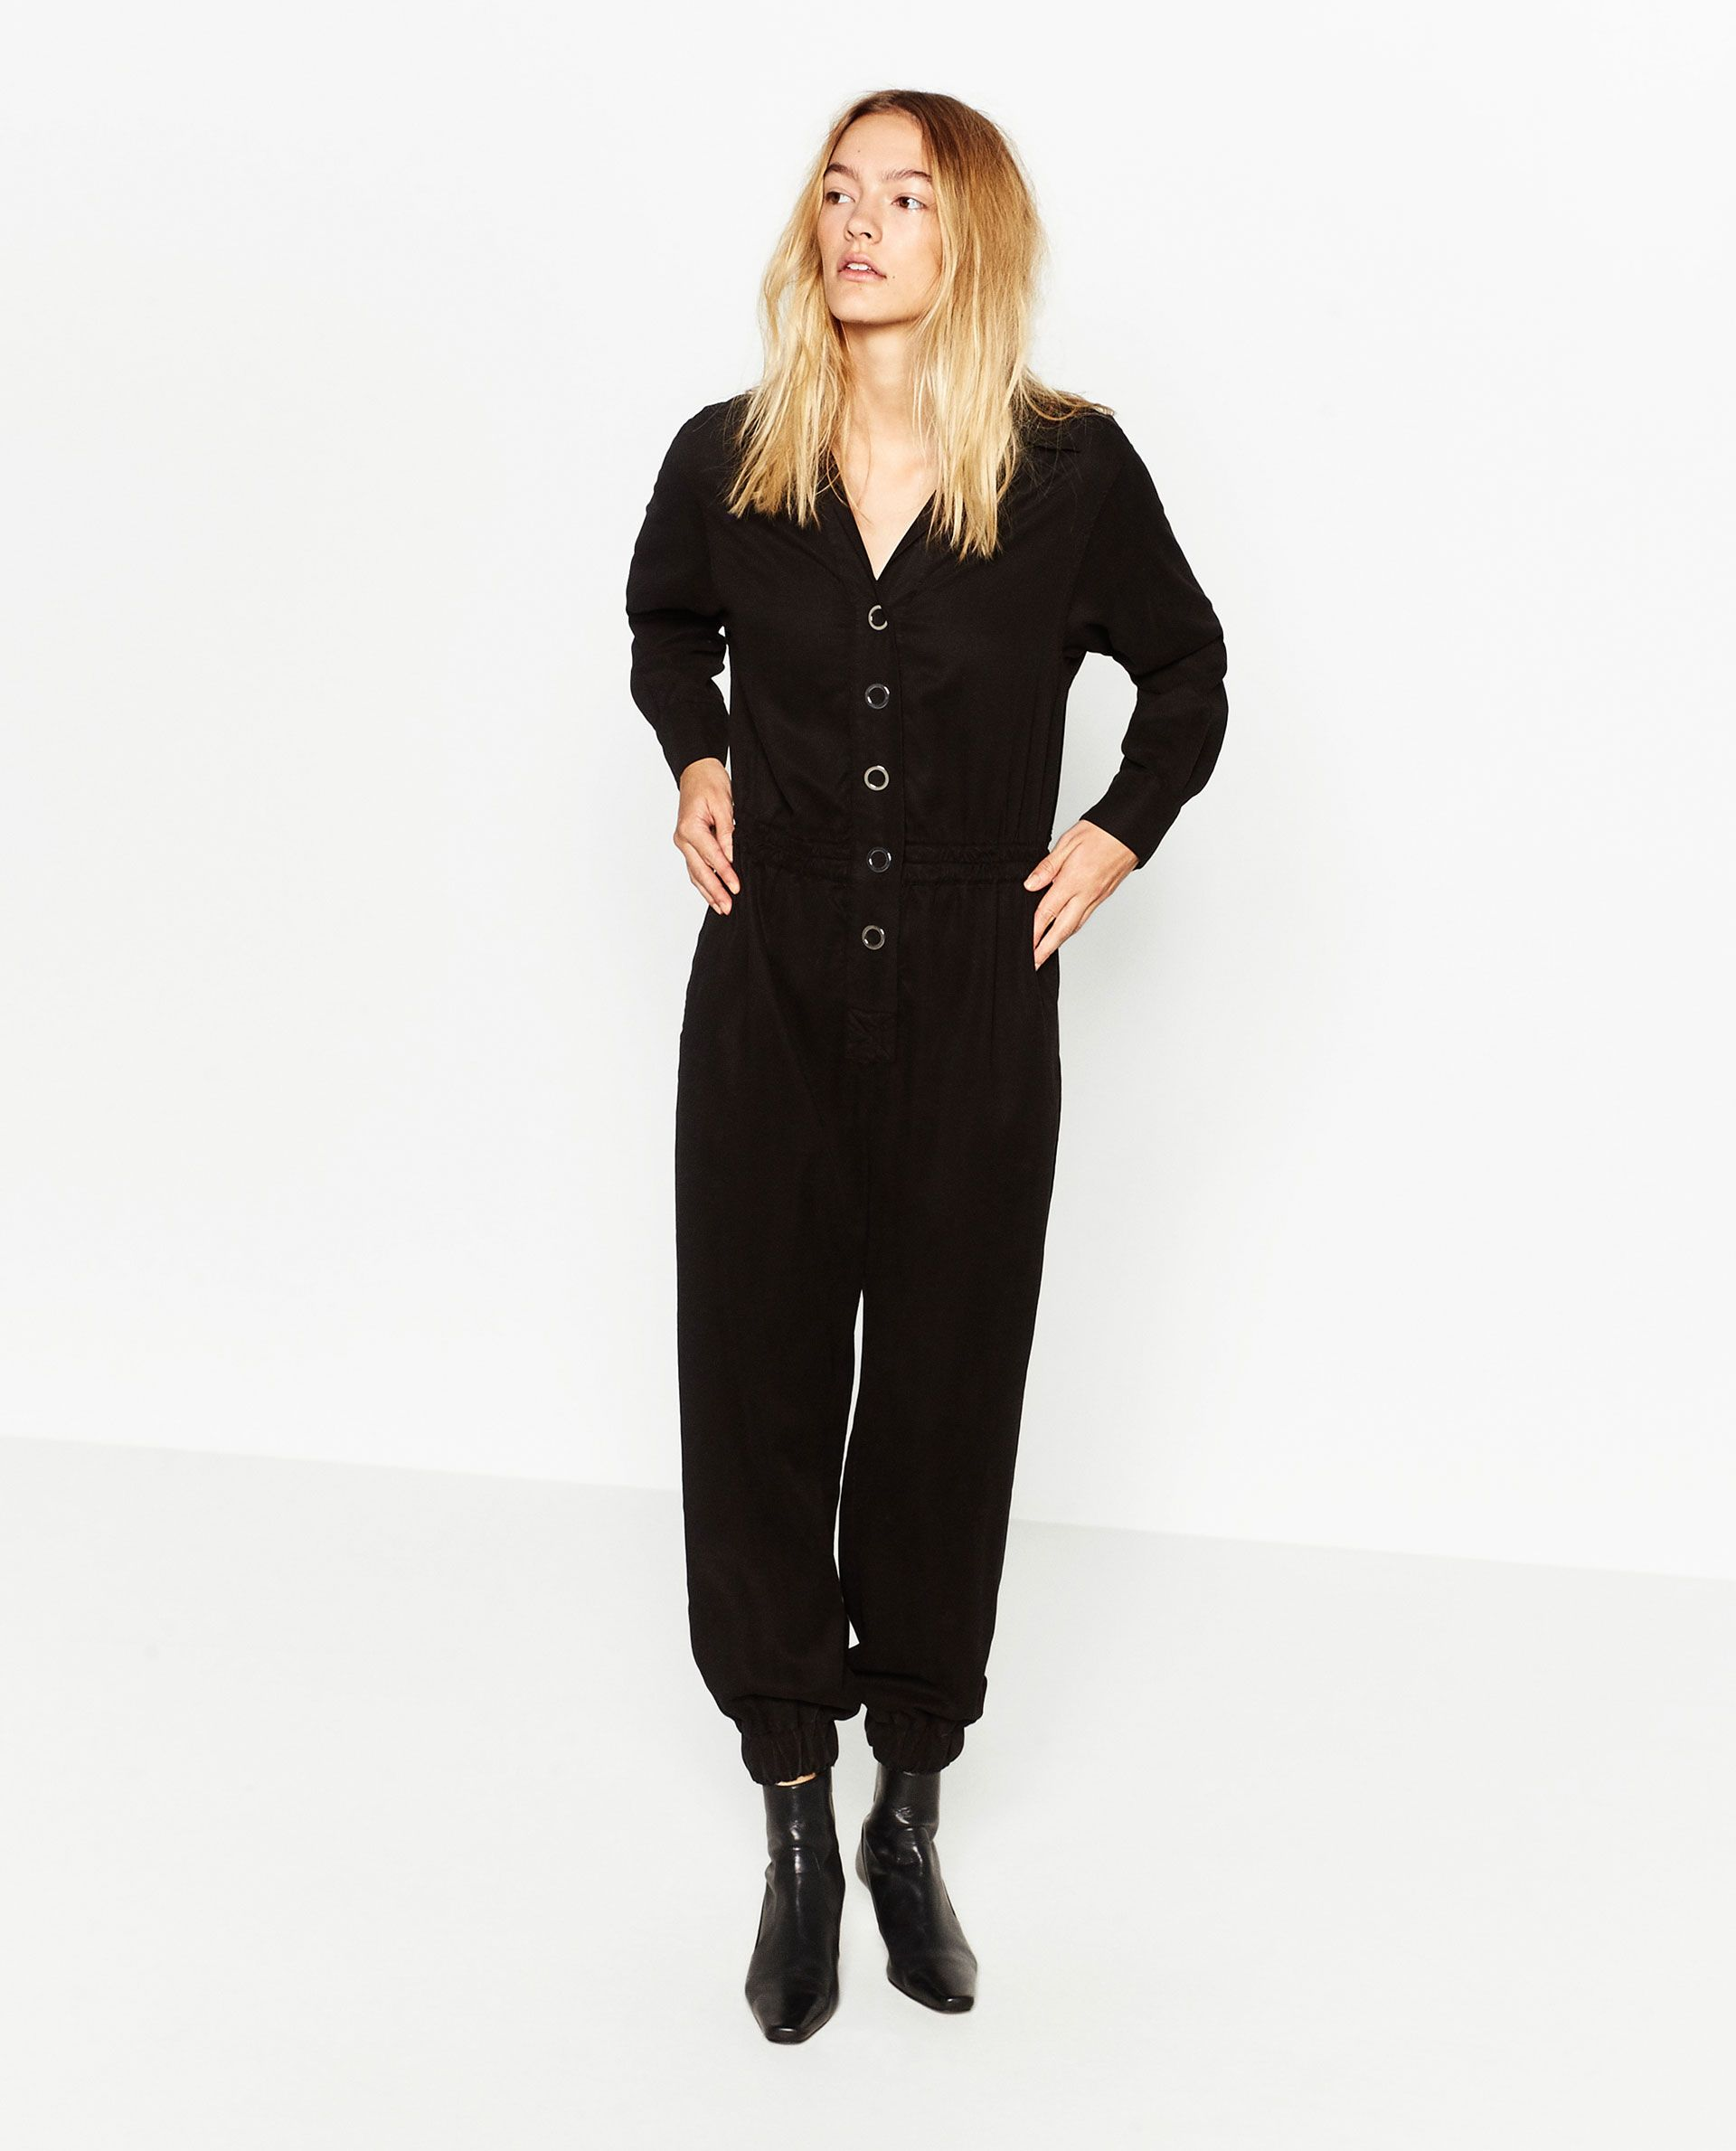 Jumpsuits & Rompers 2019 Fashion Zara Trafaluc Velour Romper Short Jumpsuit Size Small Black Nice! Clothing, Shoes & Accessories